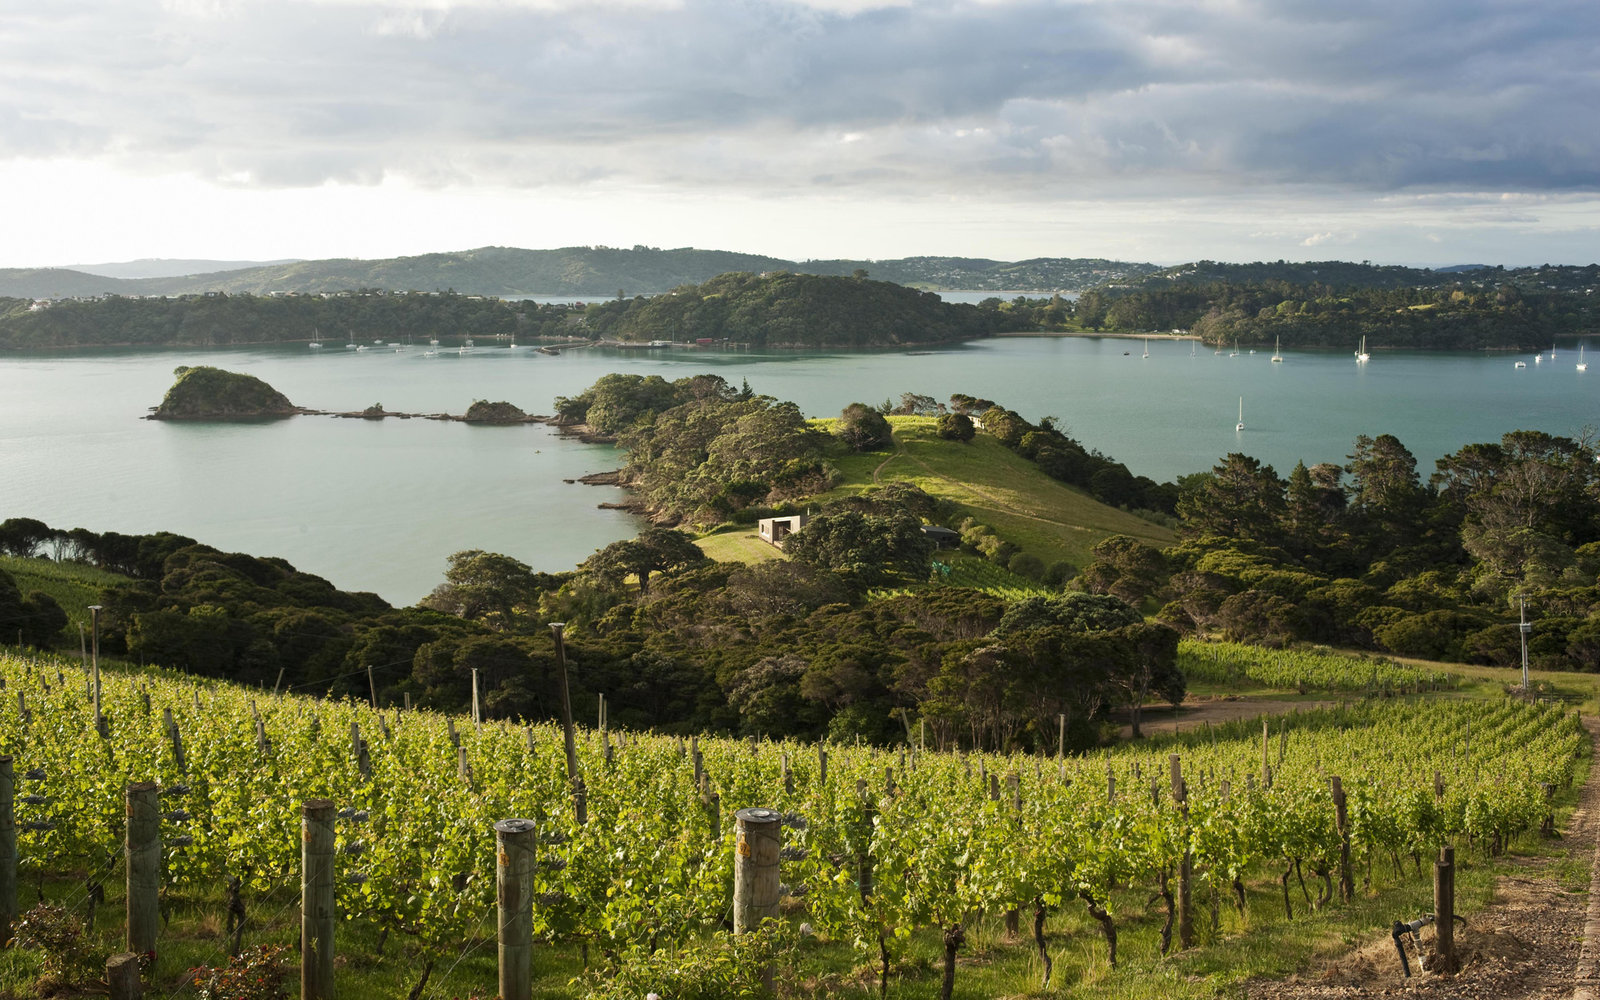 No. 4: Waiheke Island, New Zealand